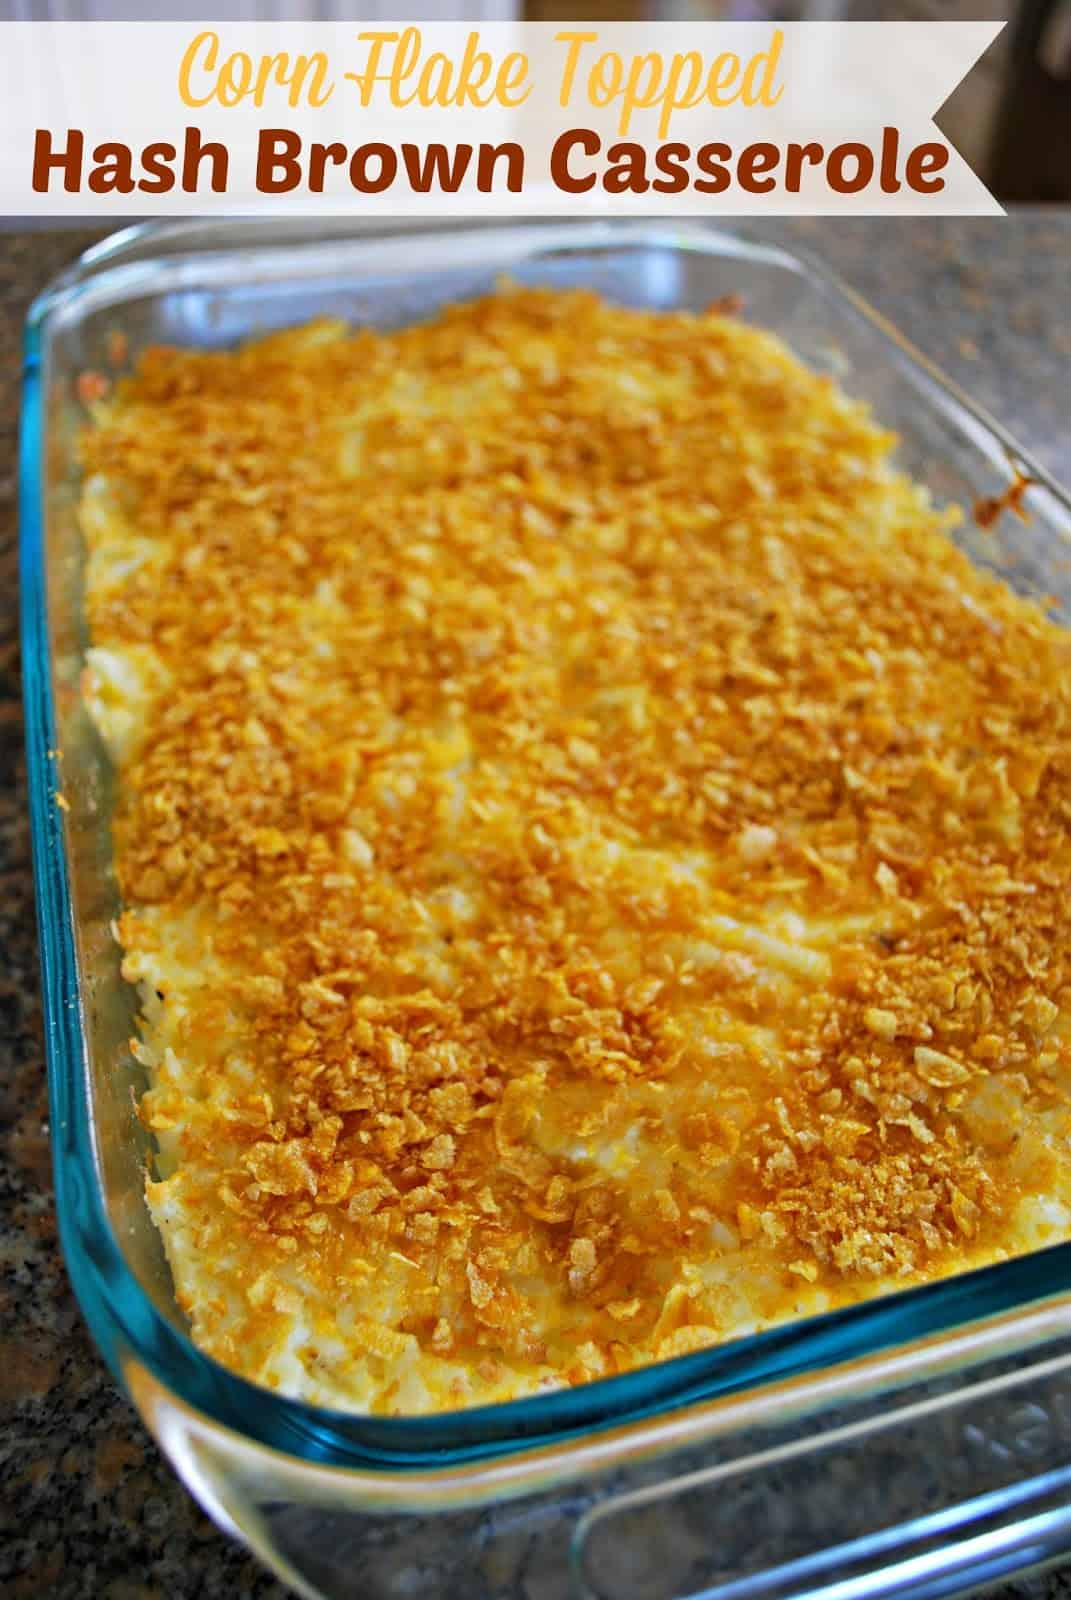 Corn Flake Topped Hash Brown Casserole - This dish is perfect for breakfast, brunch or dinner. So cheesy and delicious!